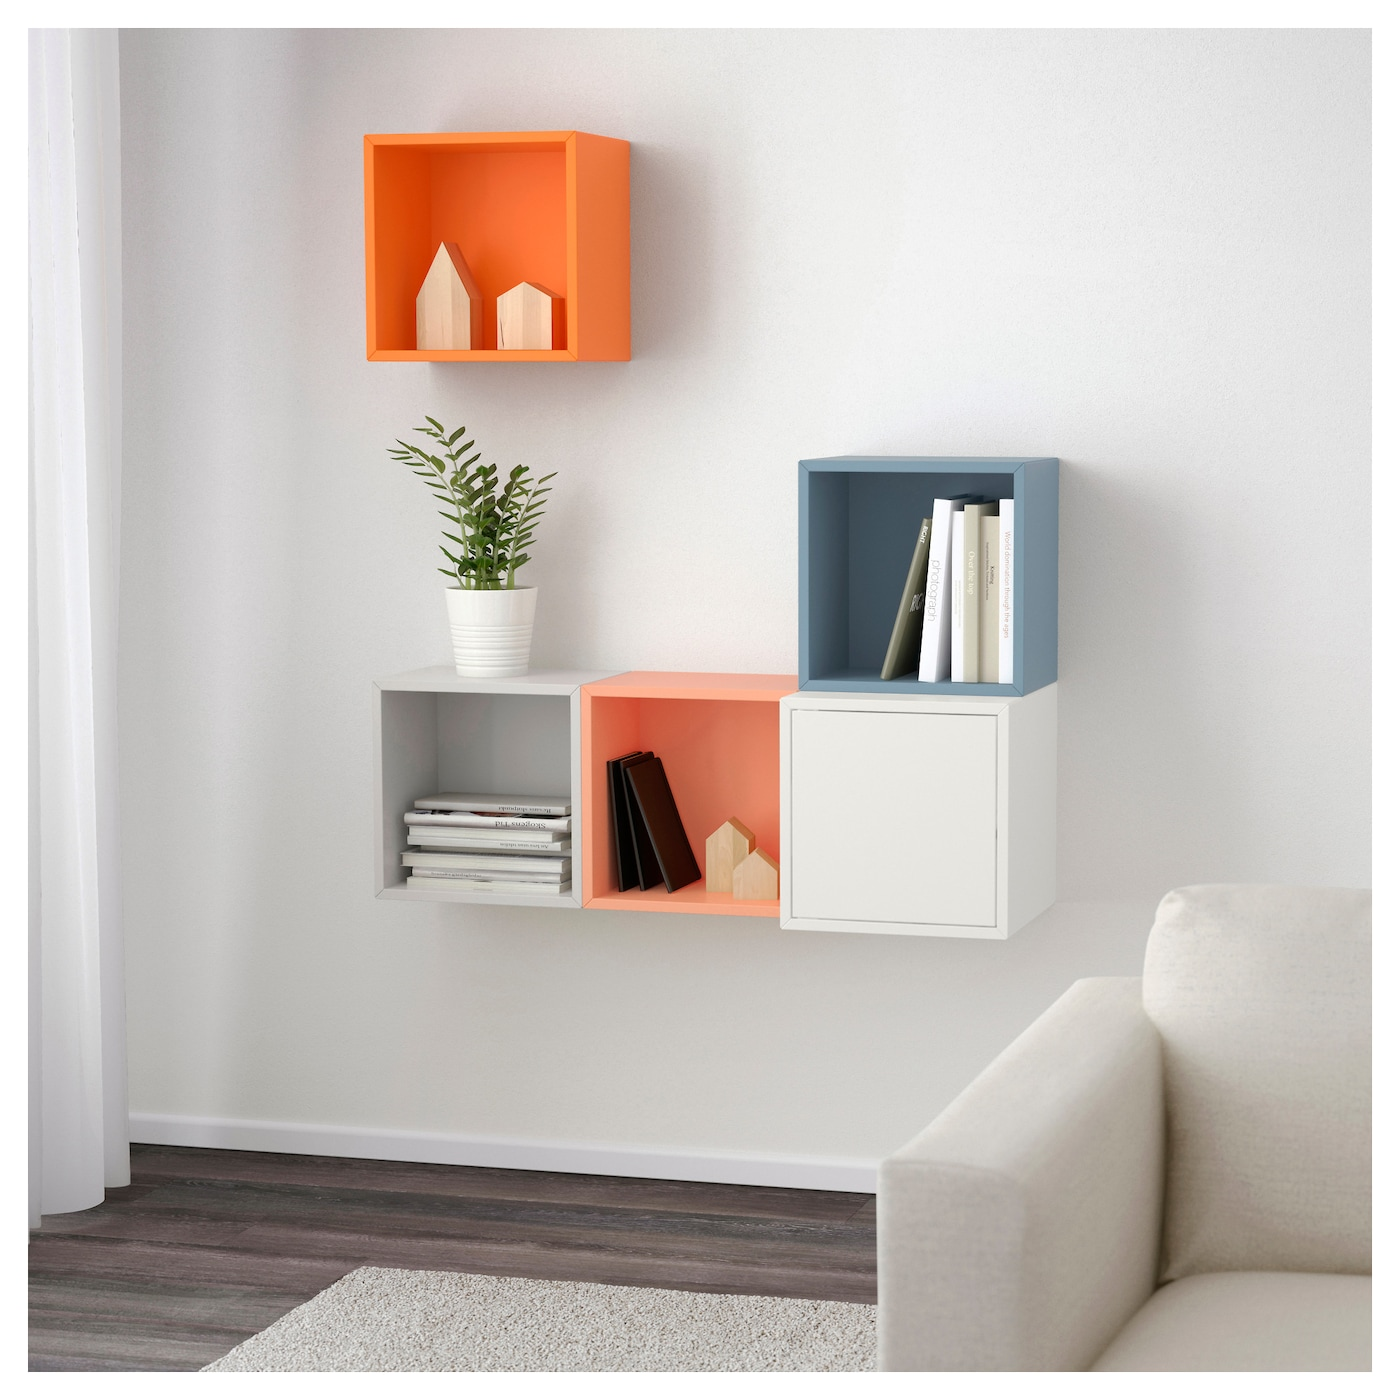 Eket Wall Mounted Cabinet Combination Multicolour 105 X 35